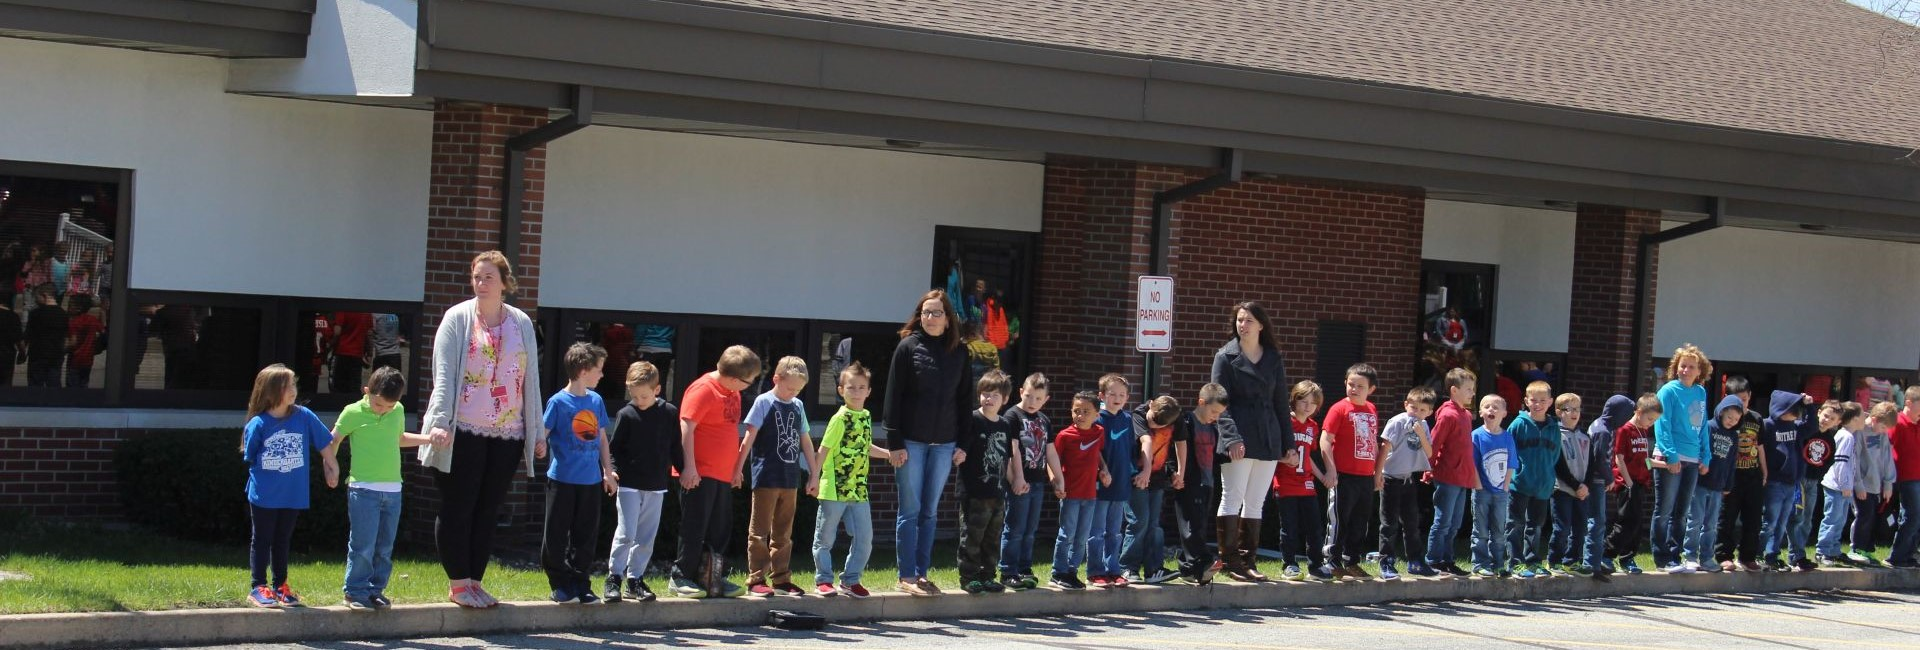 Wheatfield Students showing honor and respect